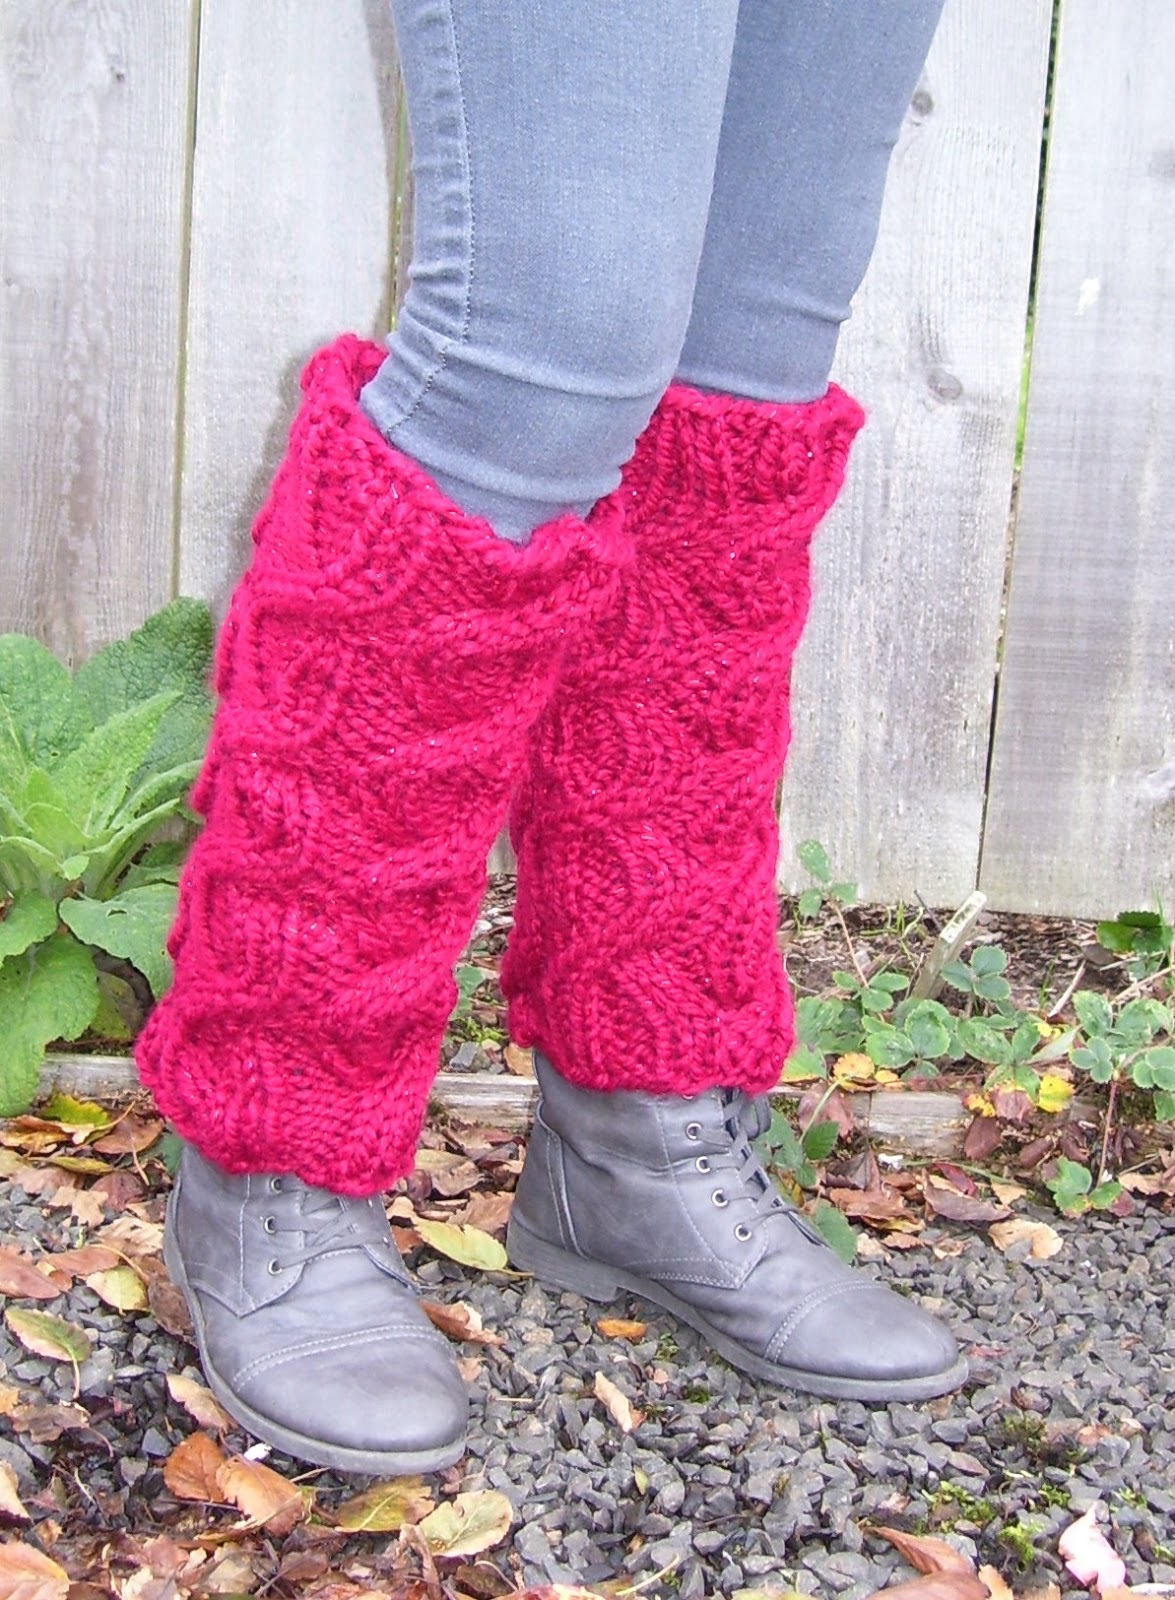 Knitting Pattern Leg Warmers Bulky Yarn : MarilynnsGardenKnitDesign: Quick Gift Leg Warmers